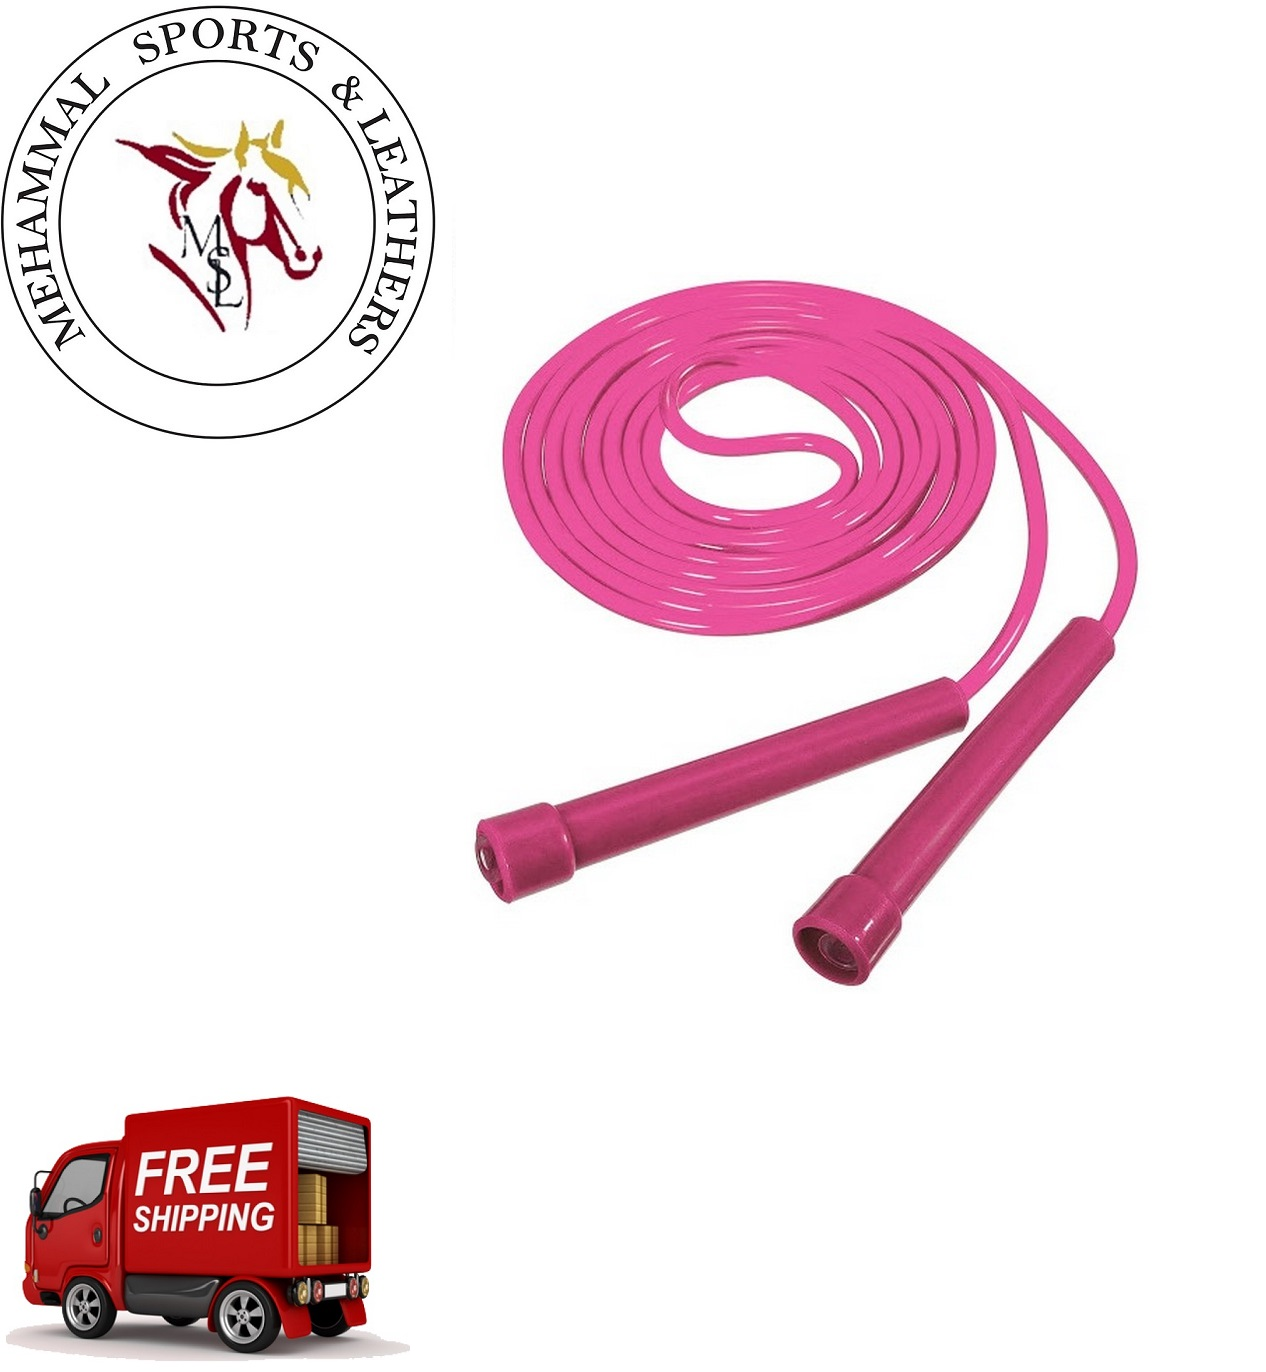 MSL Outdoor Sports Speed Jumping Rope And Anti Slip Skipping Ropes Soft Nylon Cable With Pvc Grip Handle Adjustable Length 9 Feet In Pink Use For Crossfit,Exercise,Gym,Aerobics Equiments Fitness,For Kids Girls Adults Men And Women